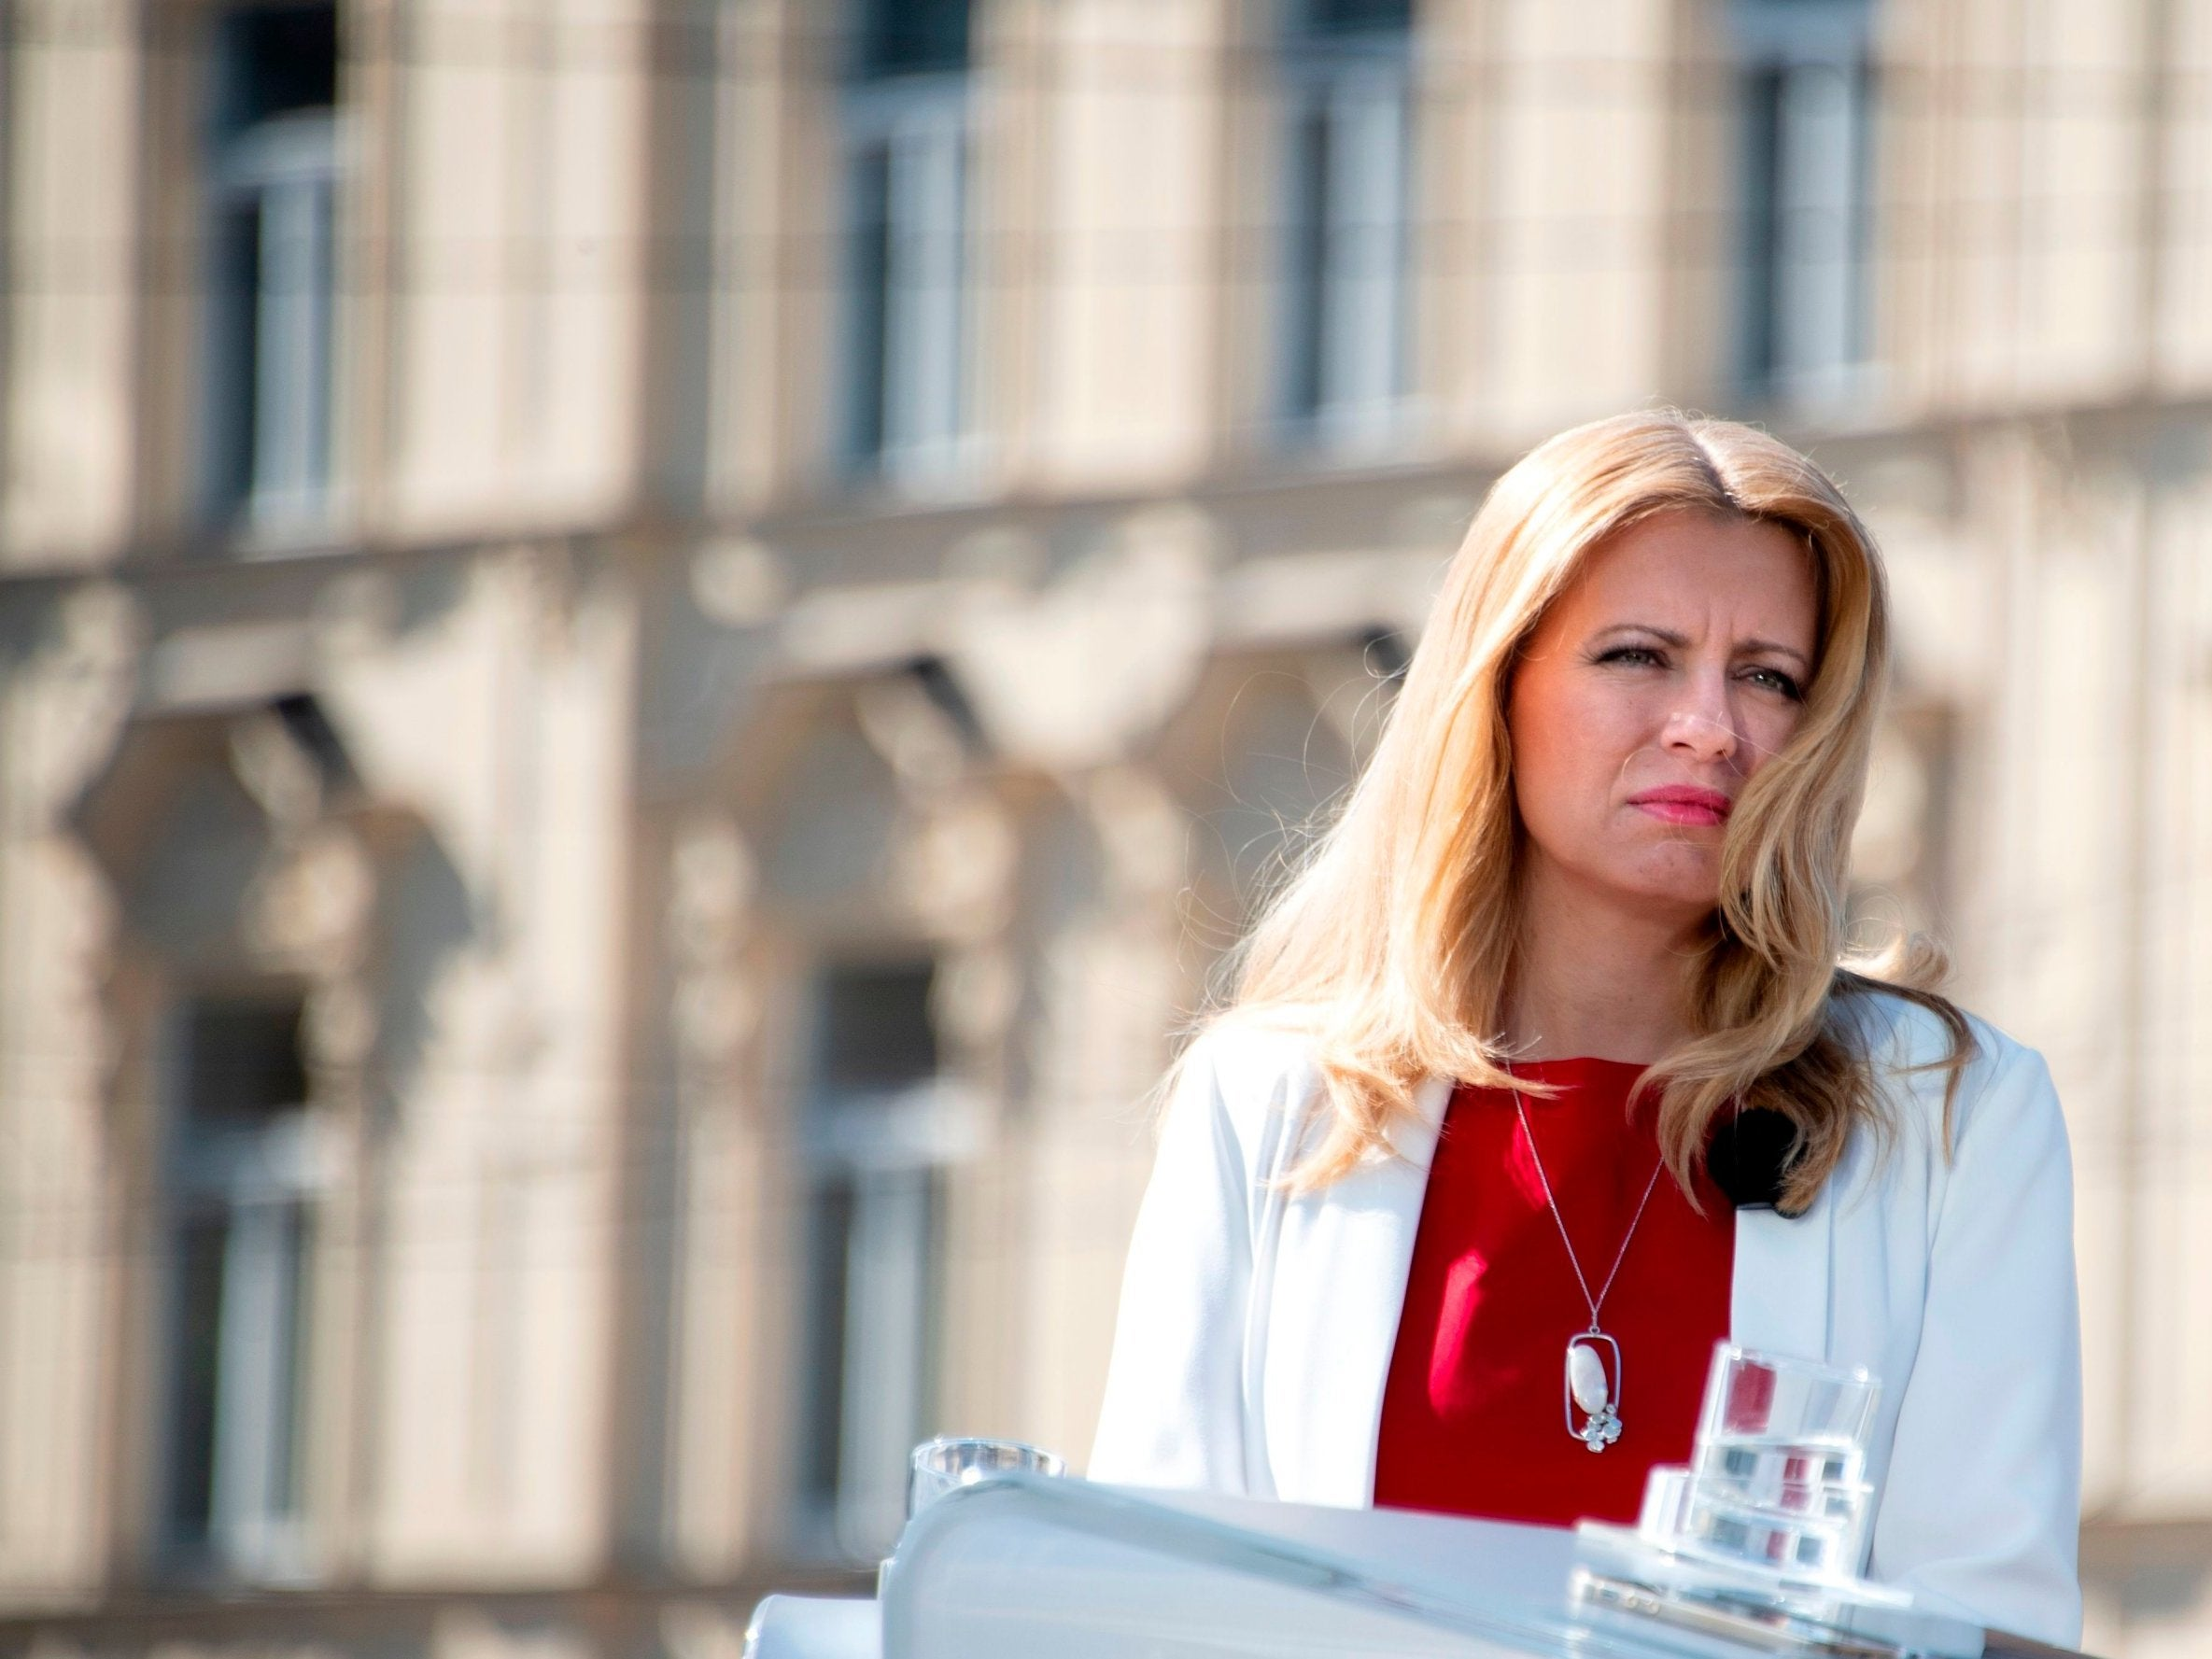 Slovakia's first female president takes office in a divided country 6